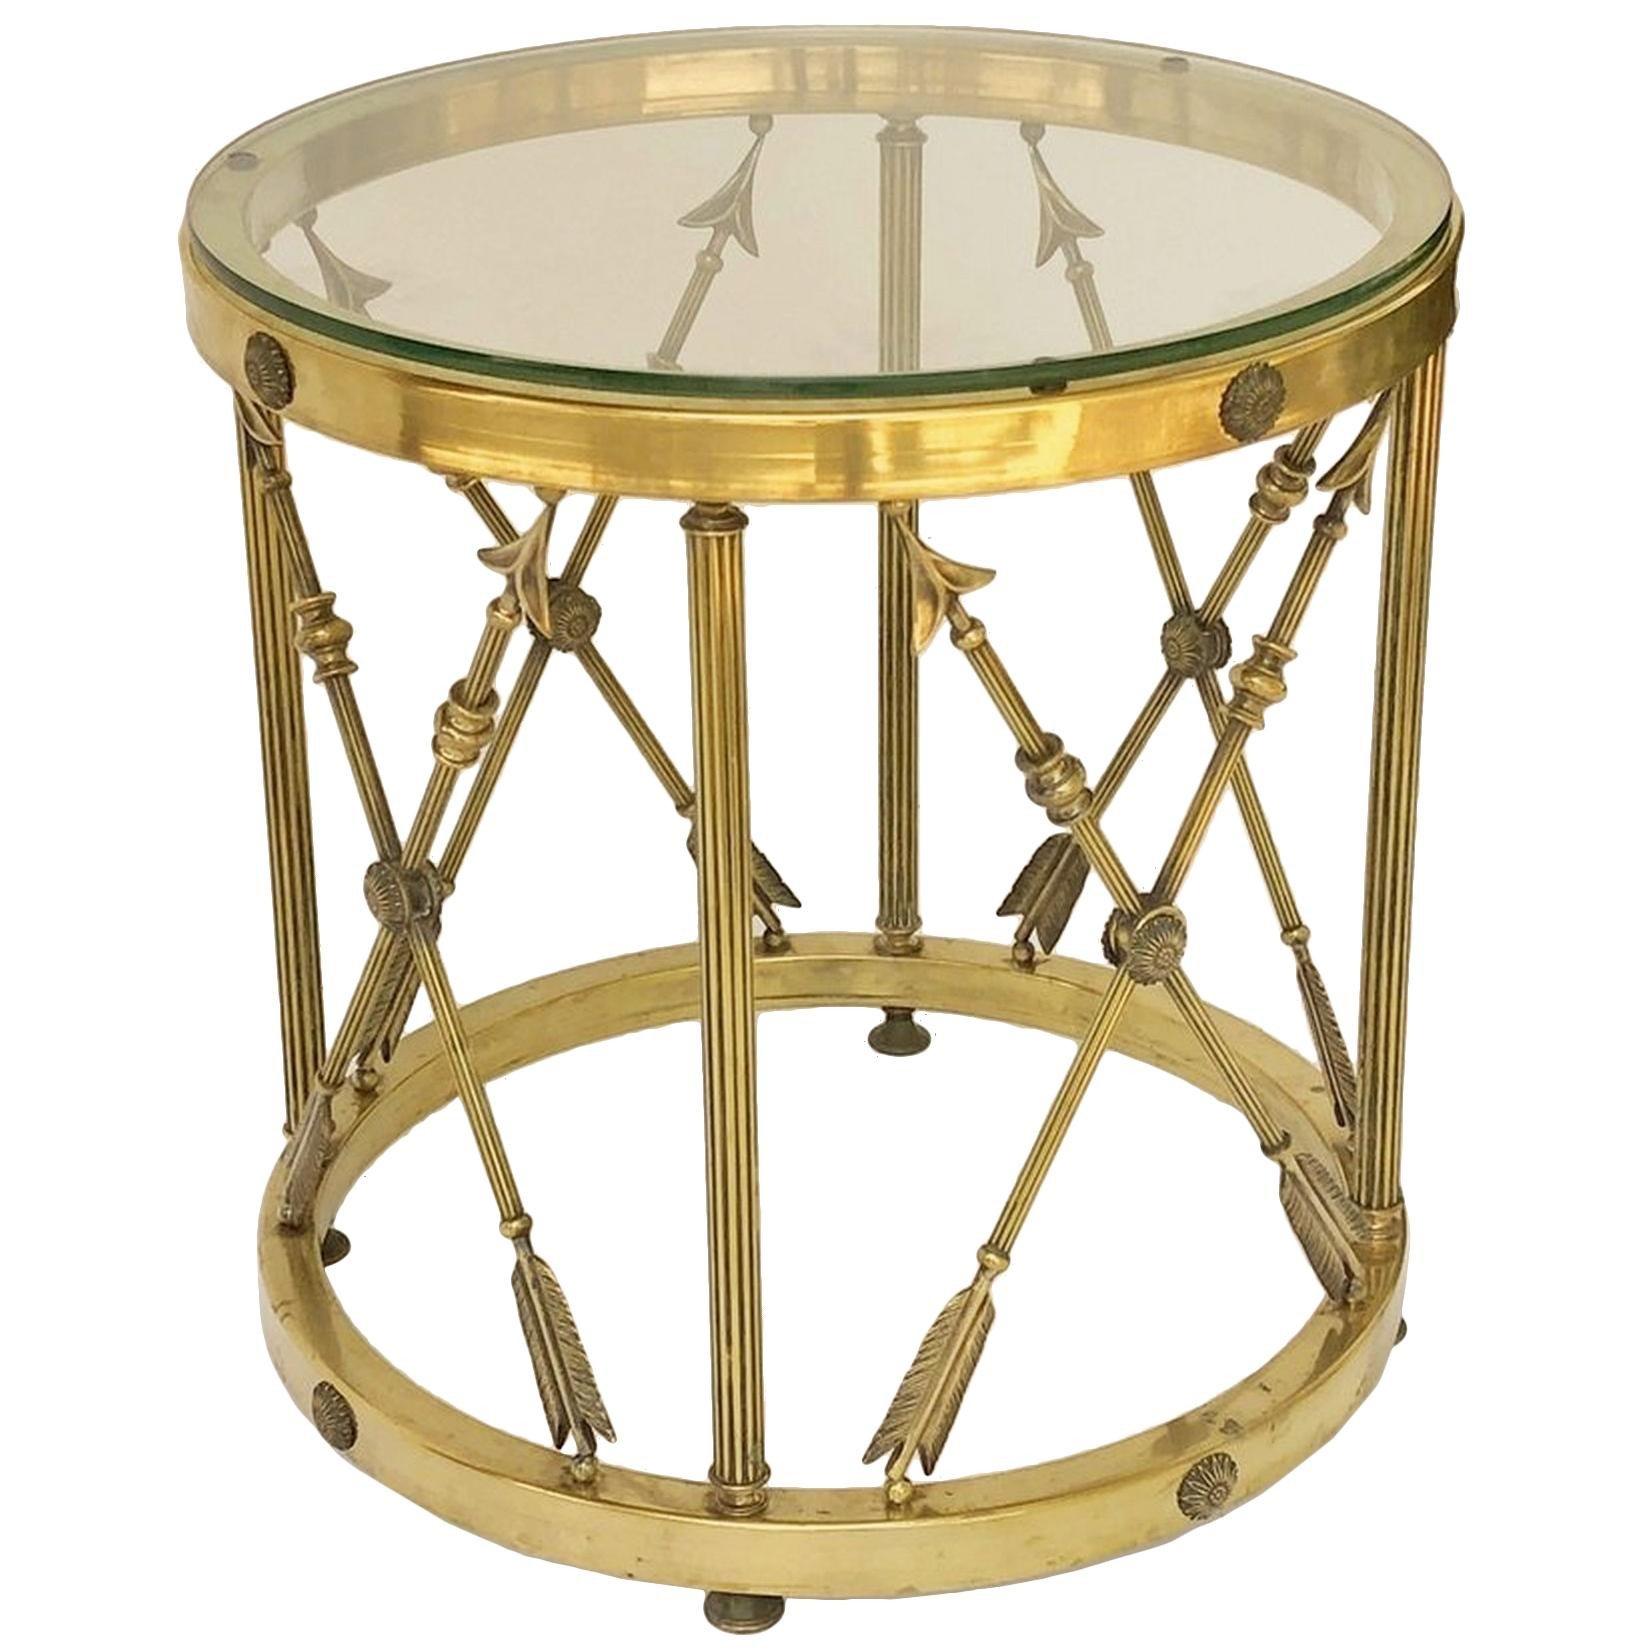 Glass Side Tables for Bedroom Elegant Round Brass and Glass English Occasional Table